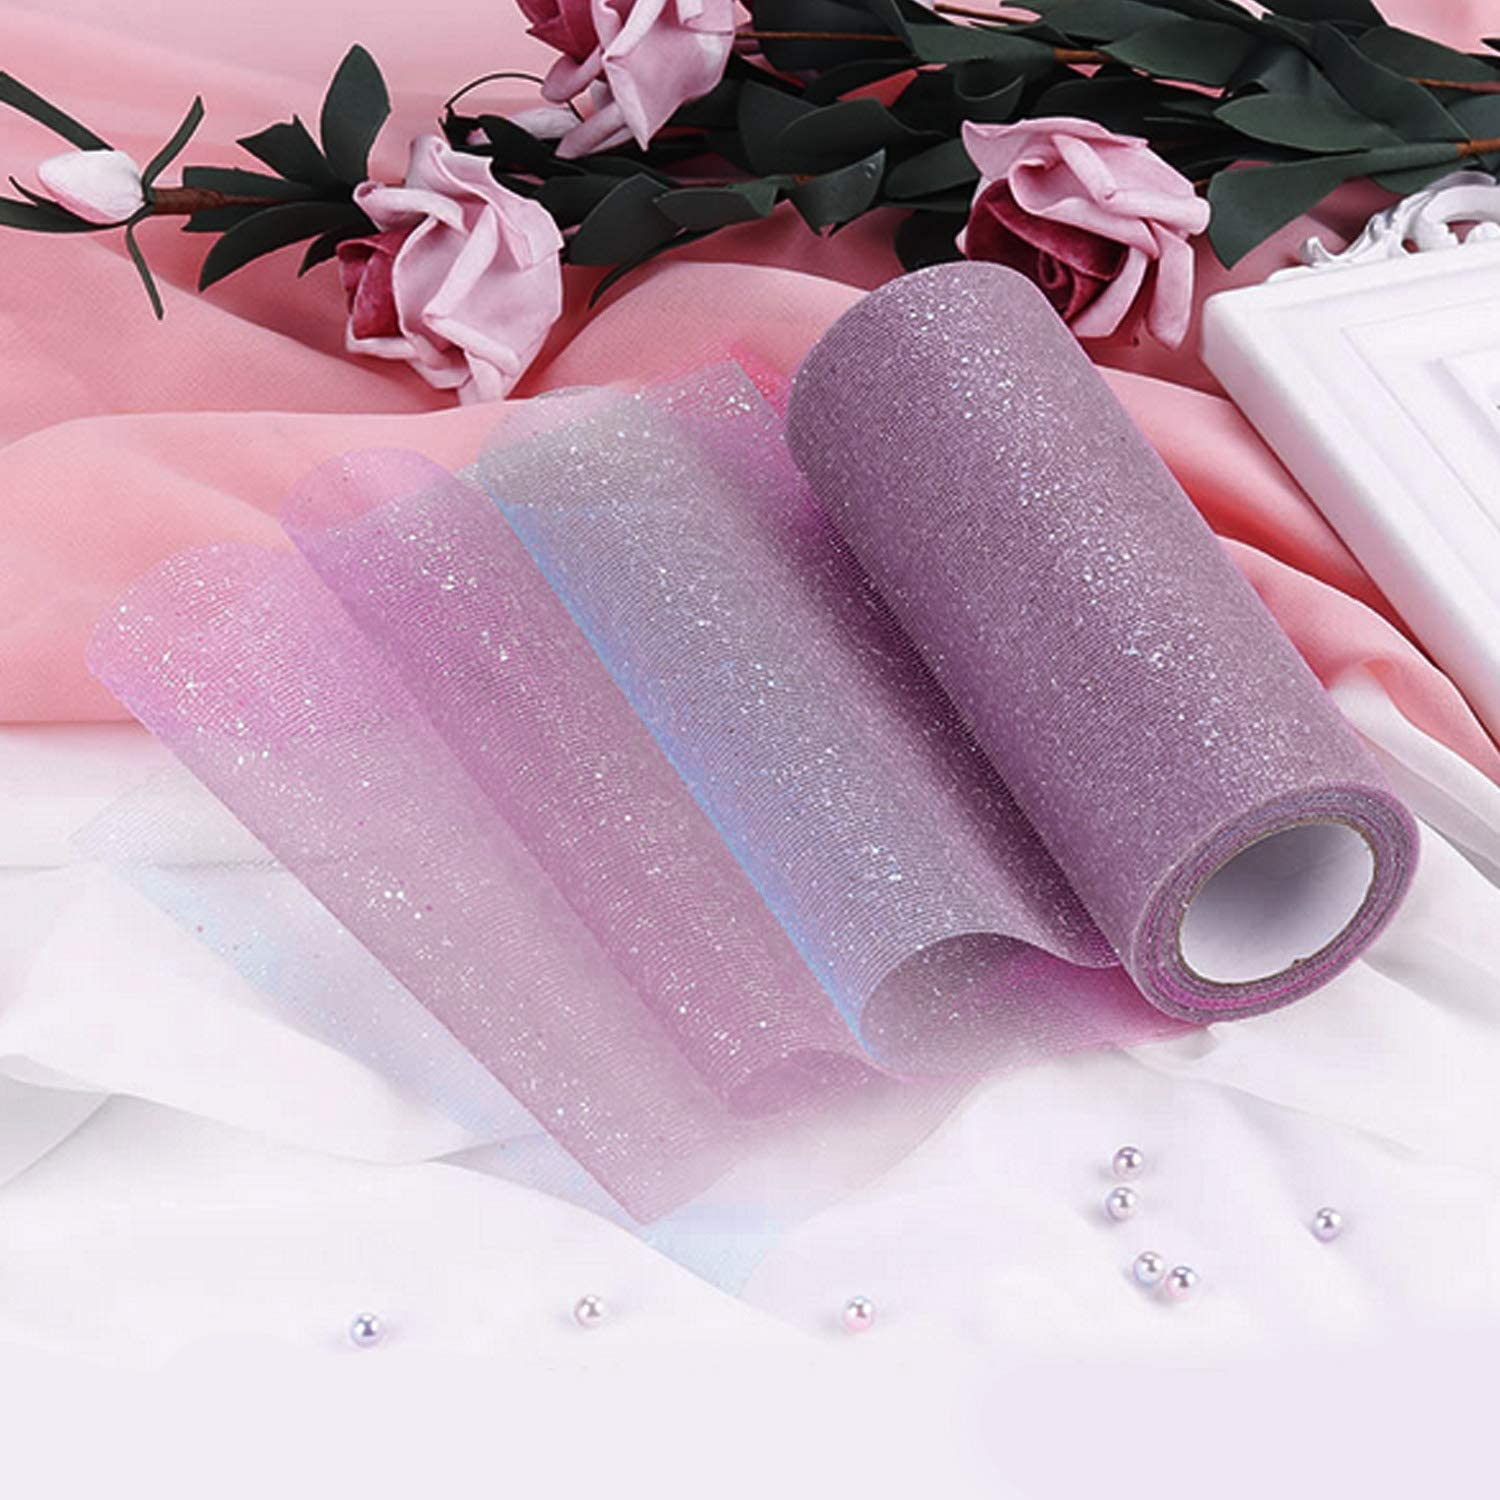 Dark Color 10 Yards Rainbow Gradient Glitter Tulle Roll Fabric Ribbon for Wedding Party Decoration Tutu Skirt Bowknot Christmas Gift Wrapping Light Color